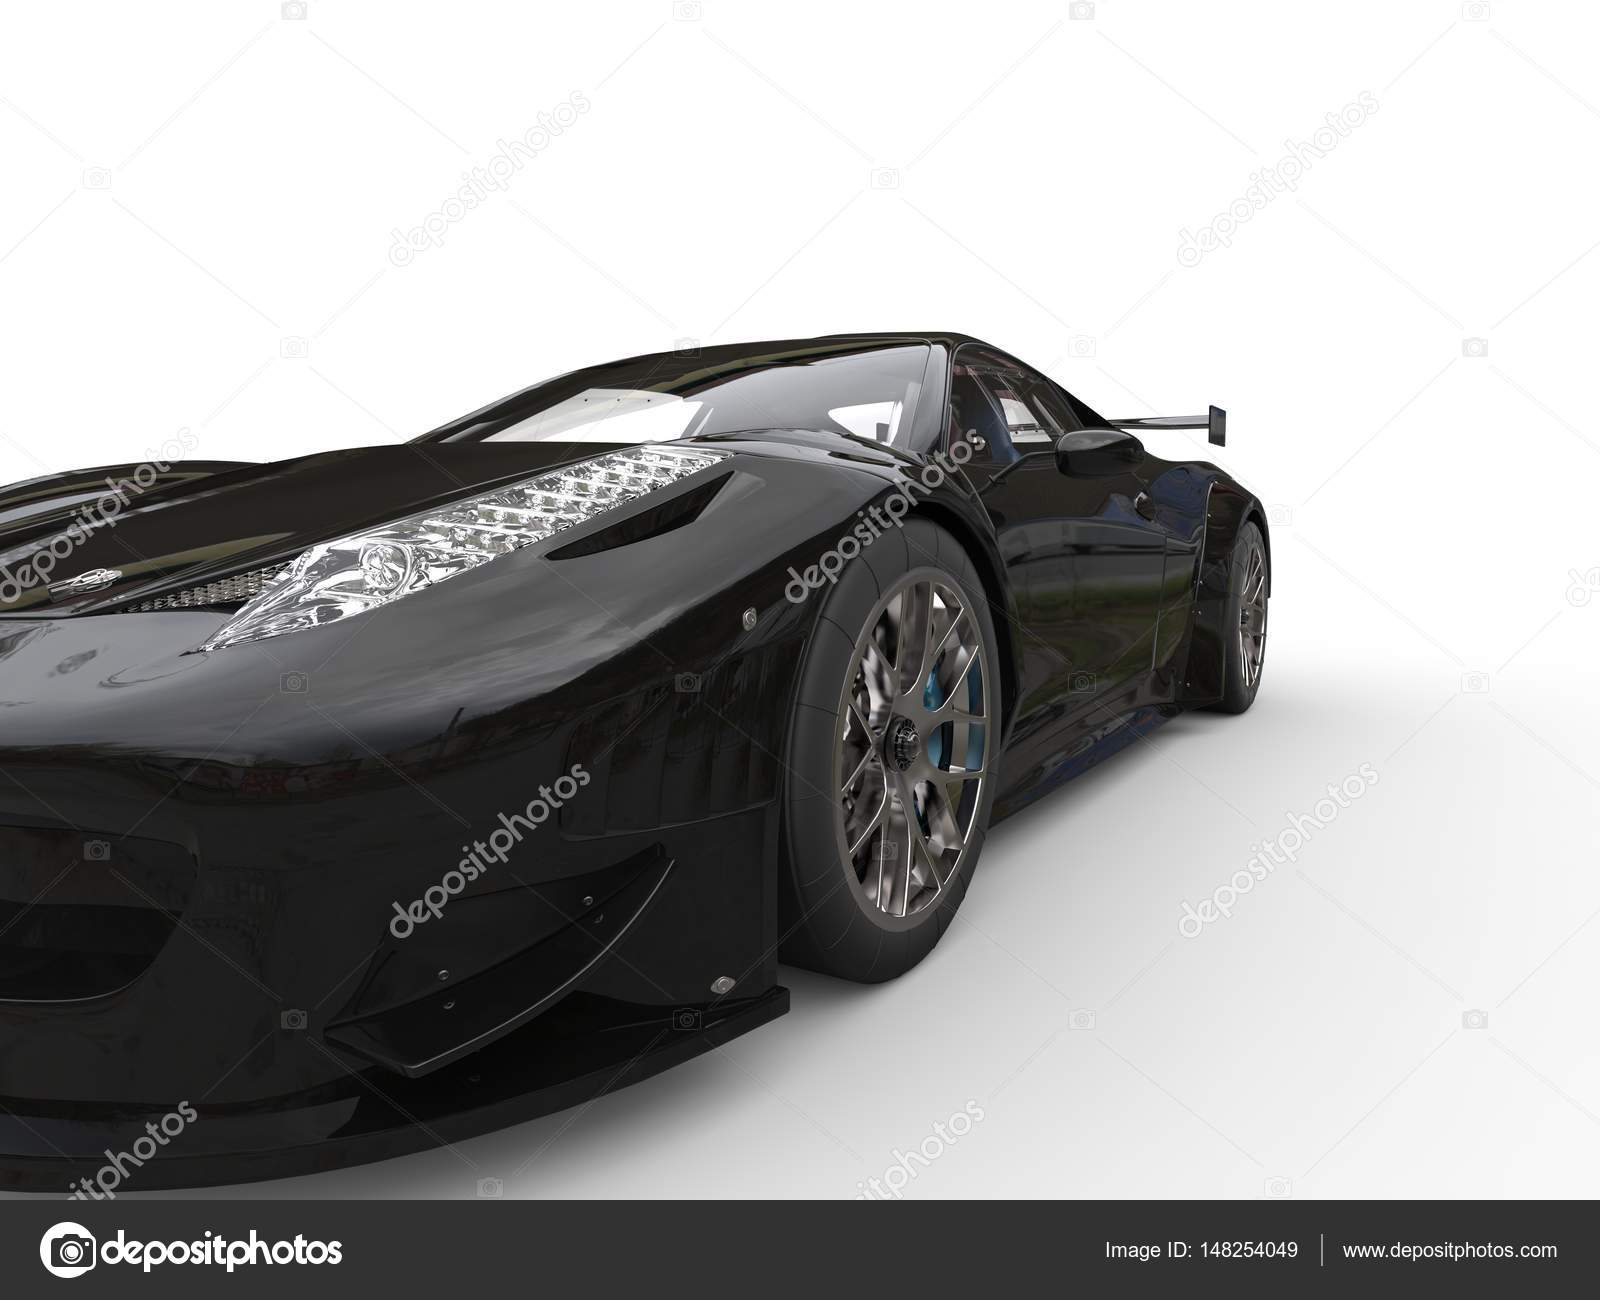 Shiny Jet Black Sports Car Headlight Closeup Shot Stock Photo